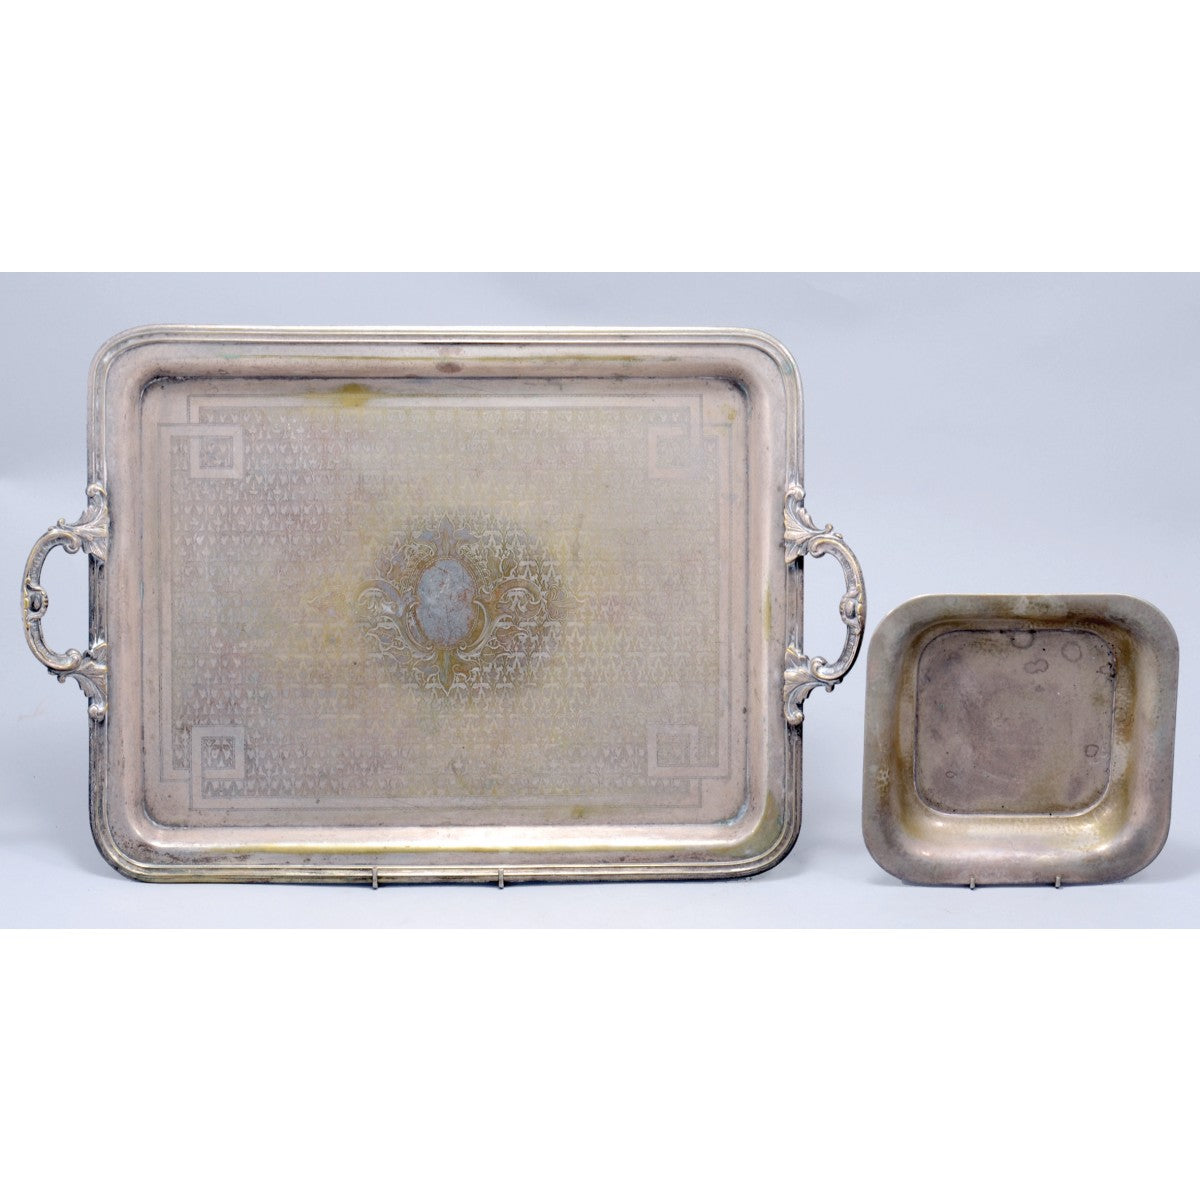 Norblin& Co. Silver Plated Tray & Antique Art-Deco Silver Square Plate